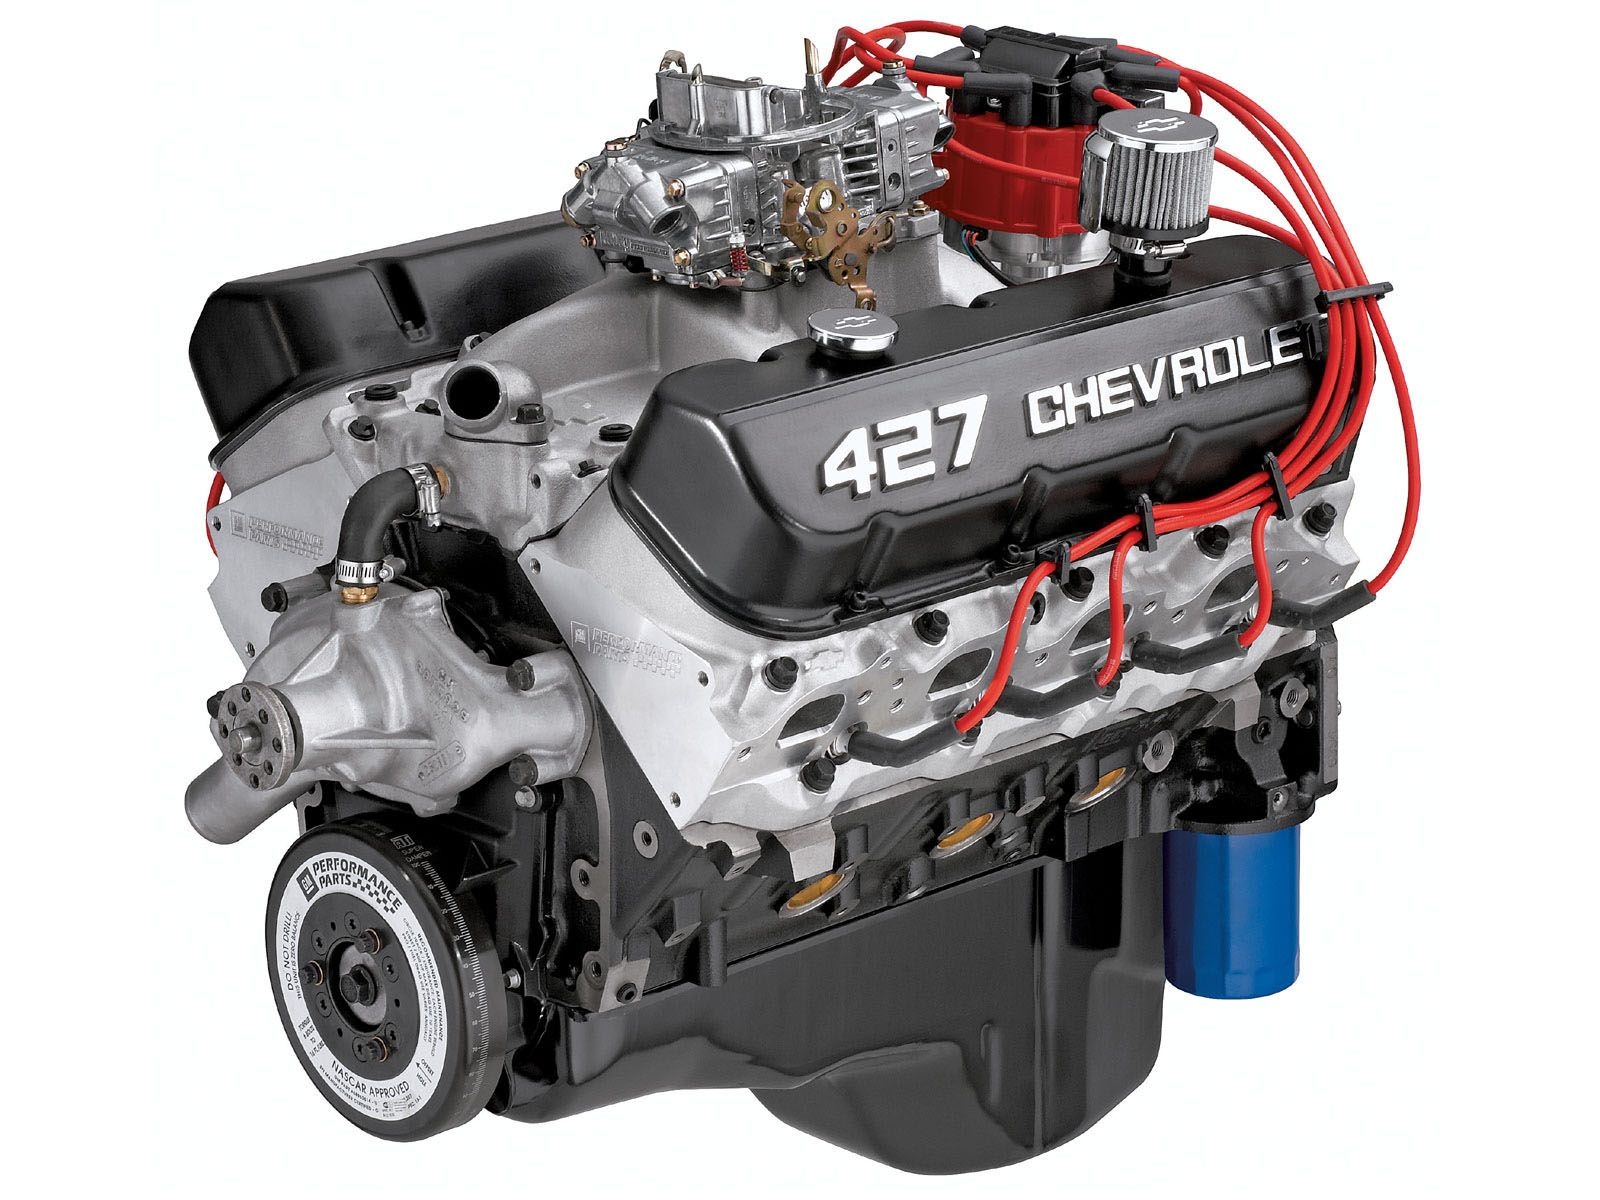 Chevy crate engine and transmission packages pictures to pin on